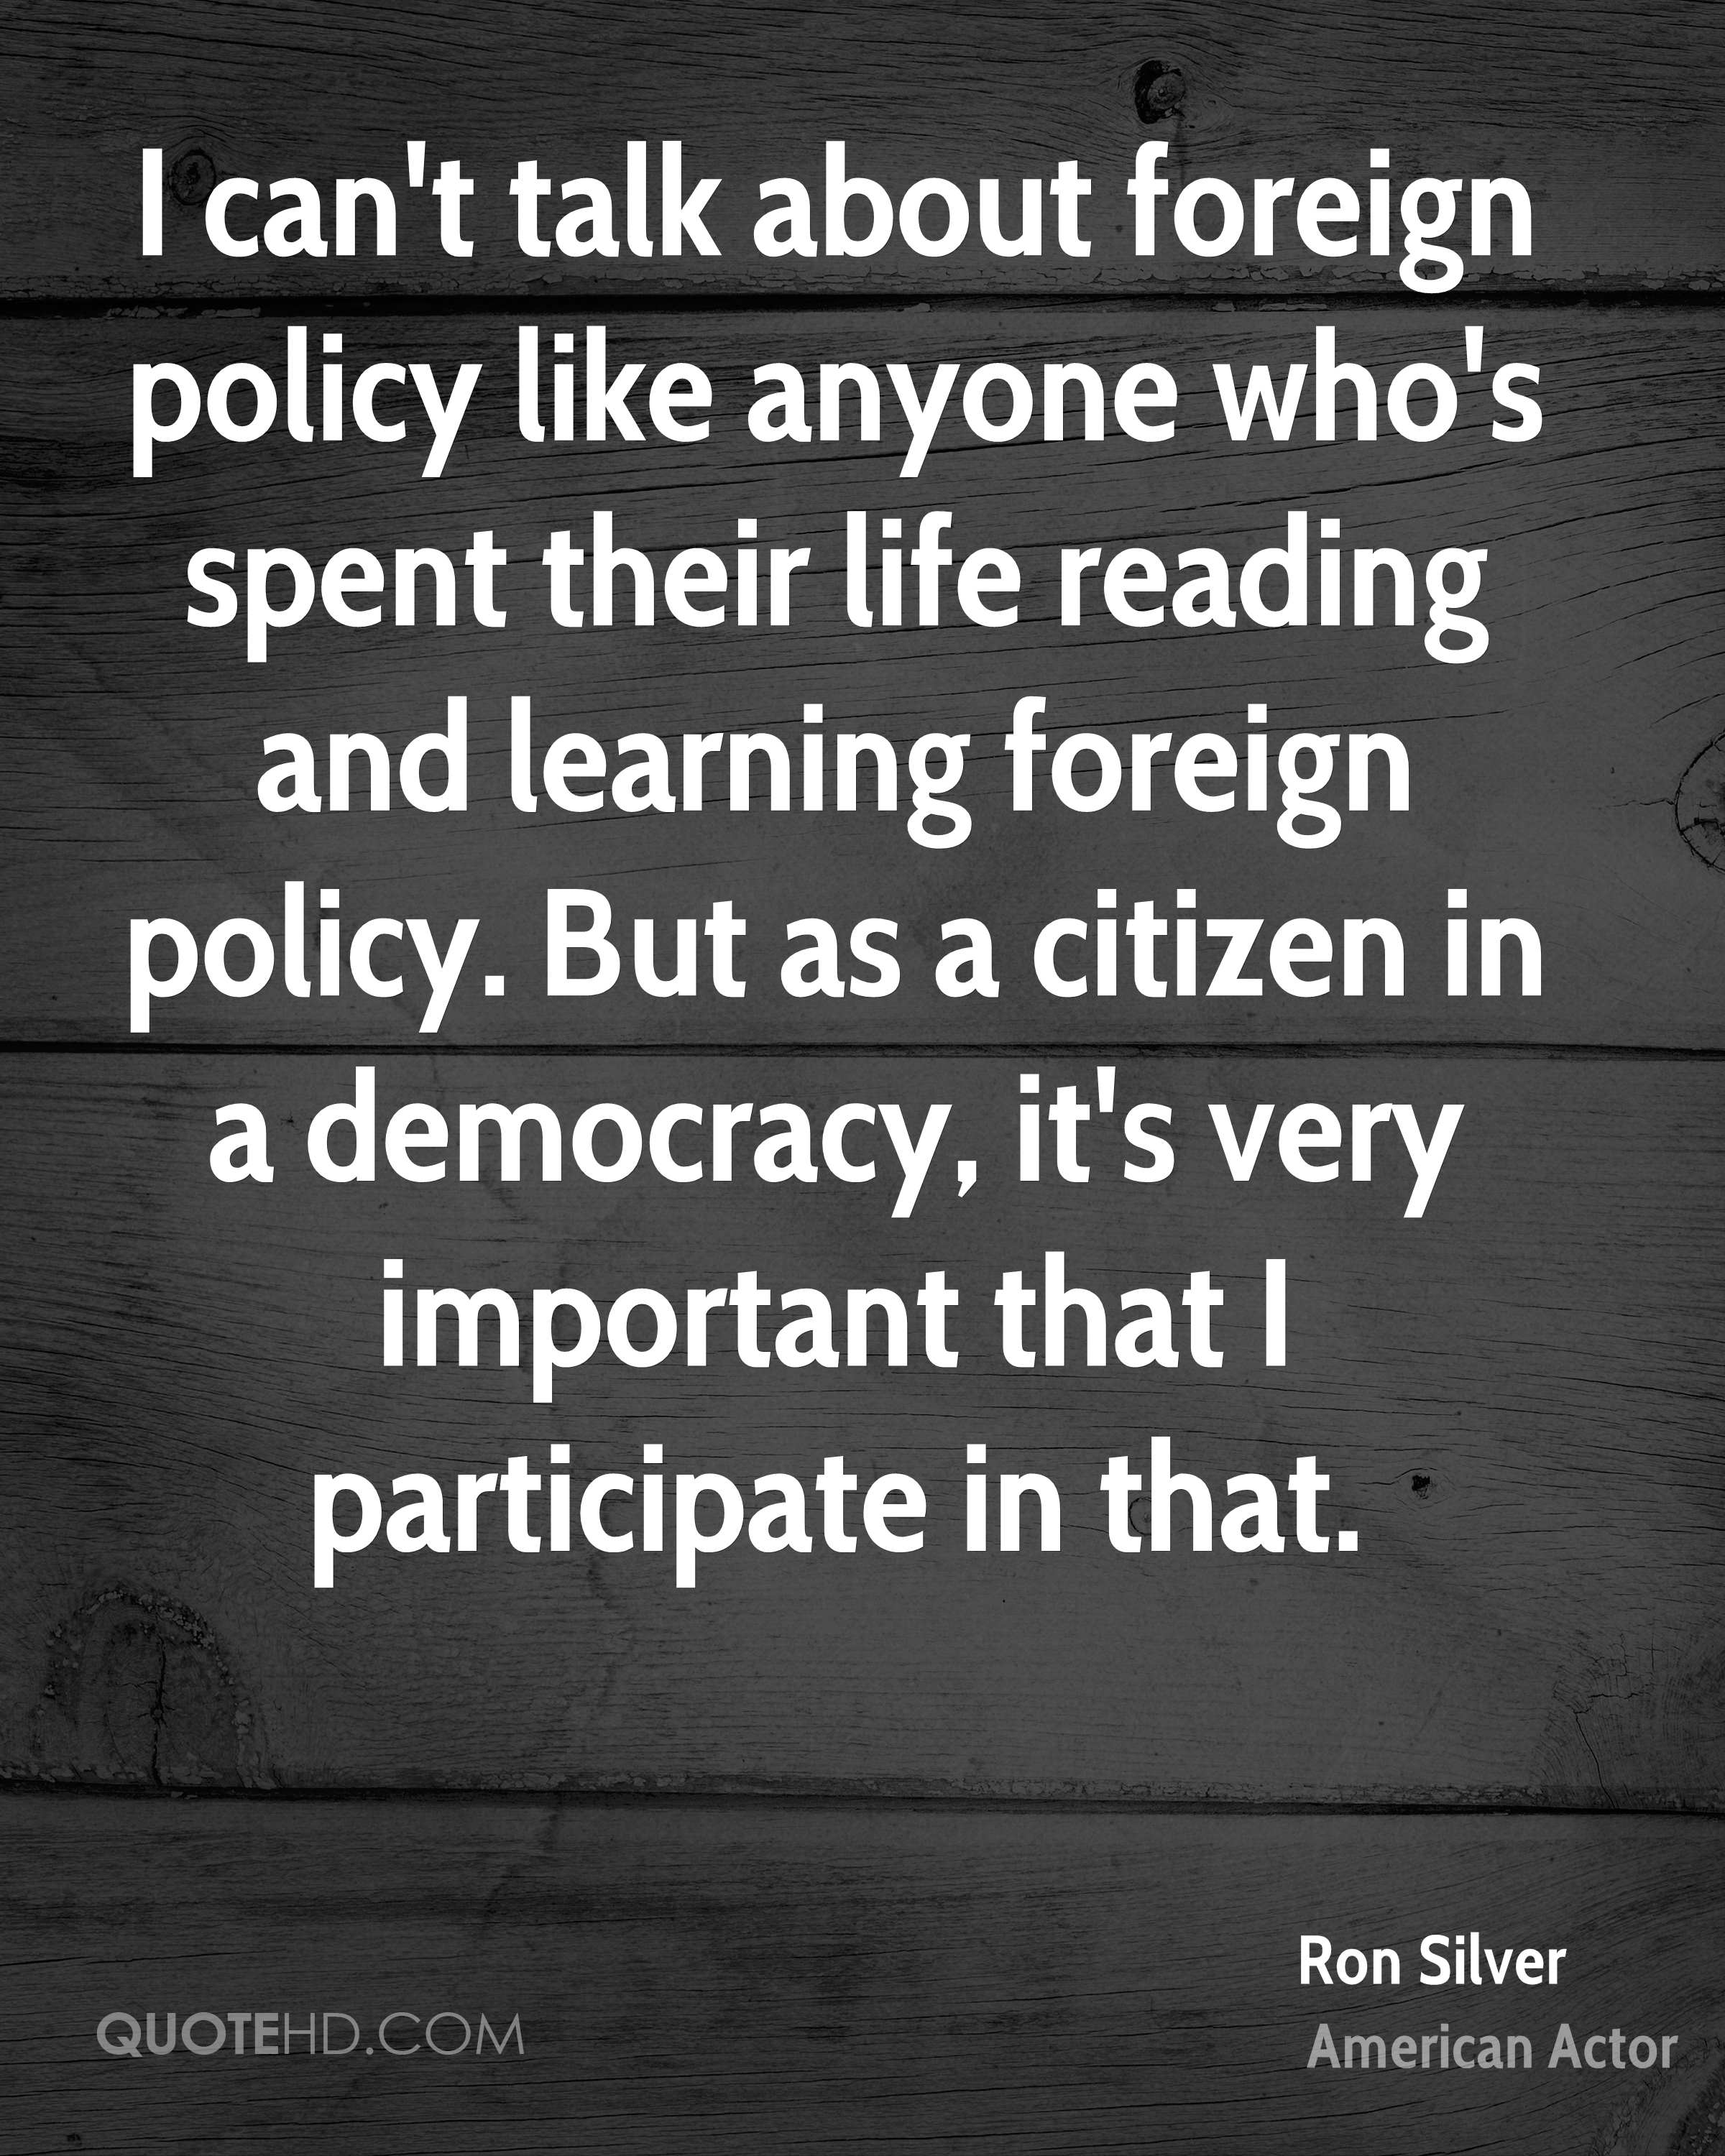 I can't talk about foreign policy like anyone who's spent their life reading and learning foreign policy. But as a citizen in a democracy, it's very important that I participate in that.